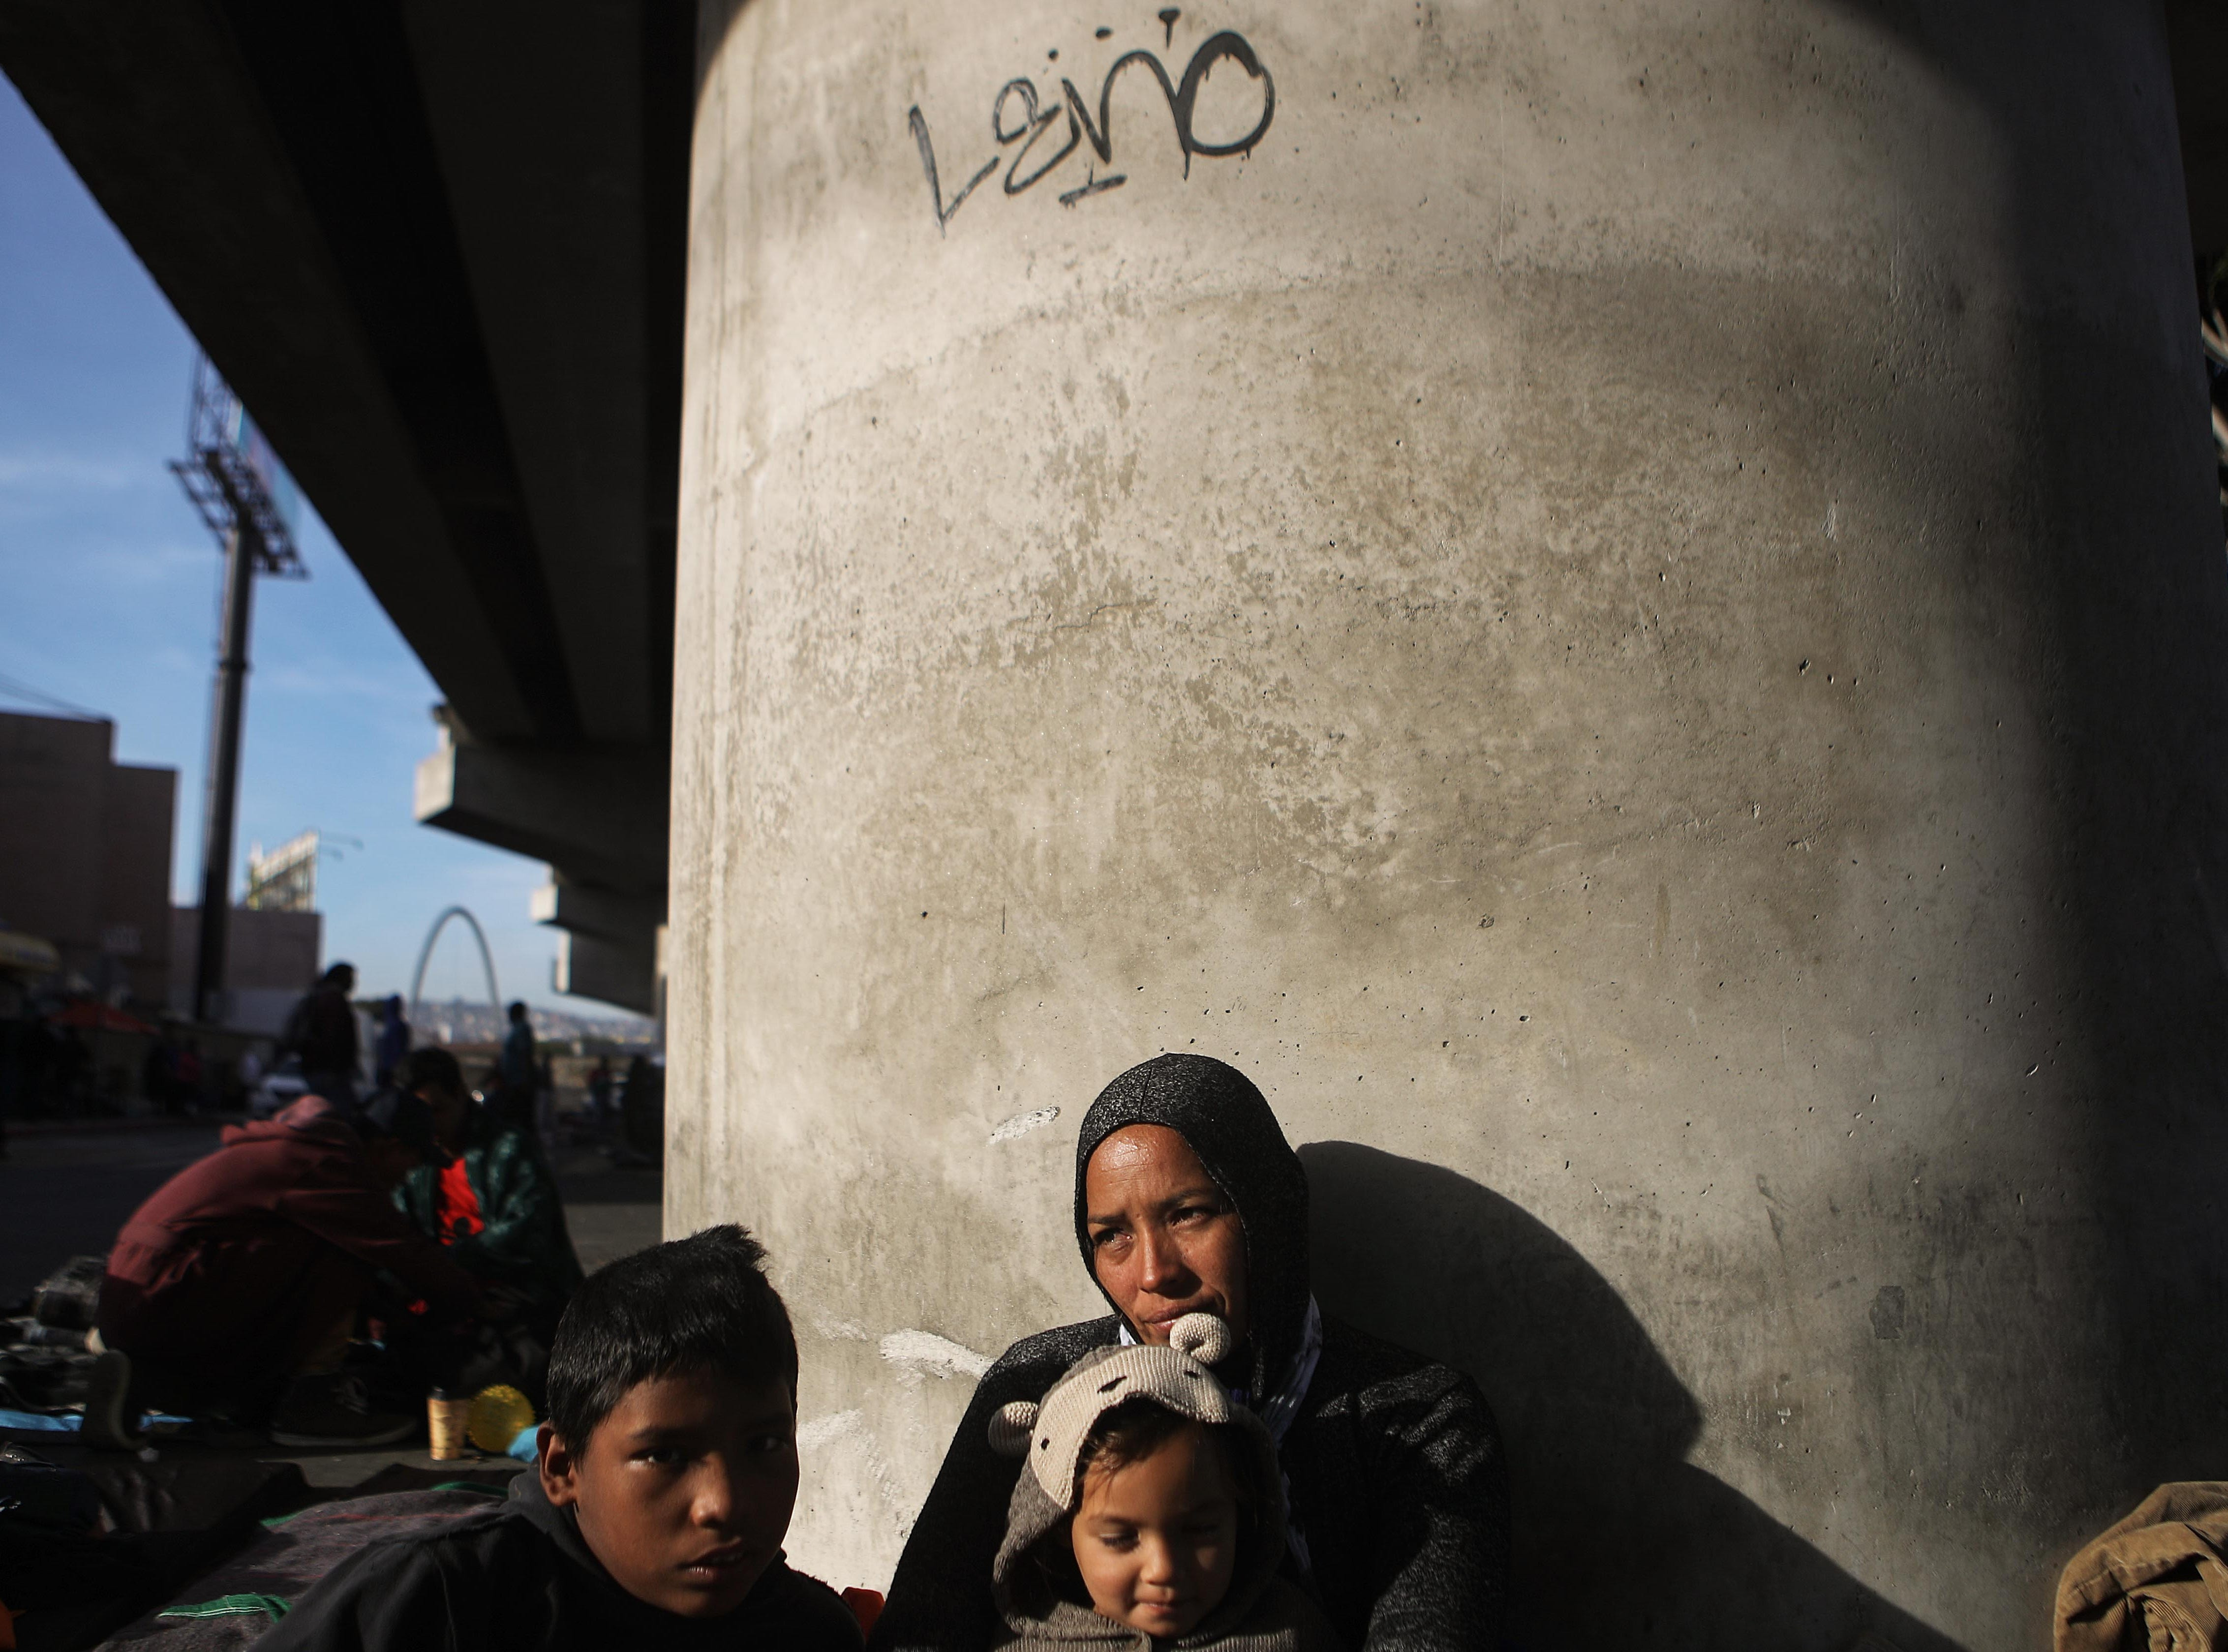 Honduran mother Lorena sits on the street with two of her four children, Yasir, left, and Maria, who all traveled together for more than one month in the 'migrant caravan', on Nov. 23, 2018 in Tijuana, Mexico.